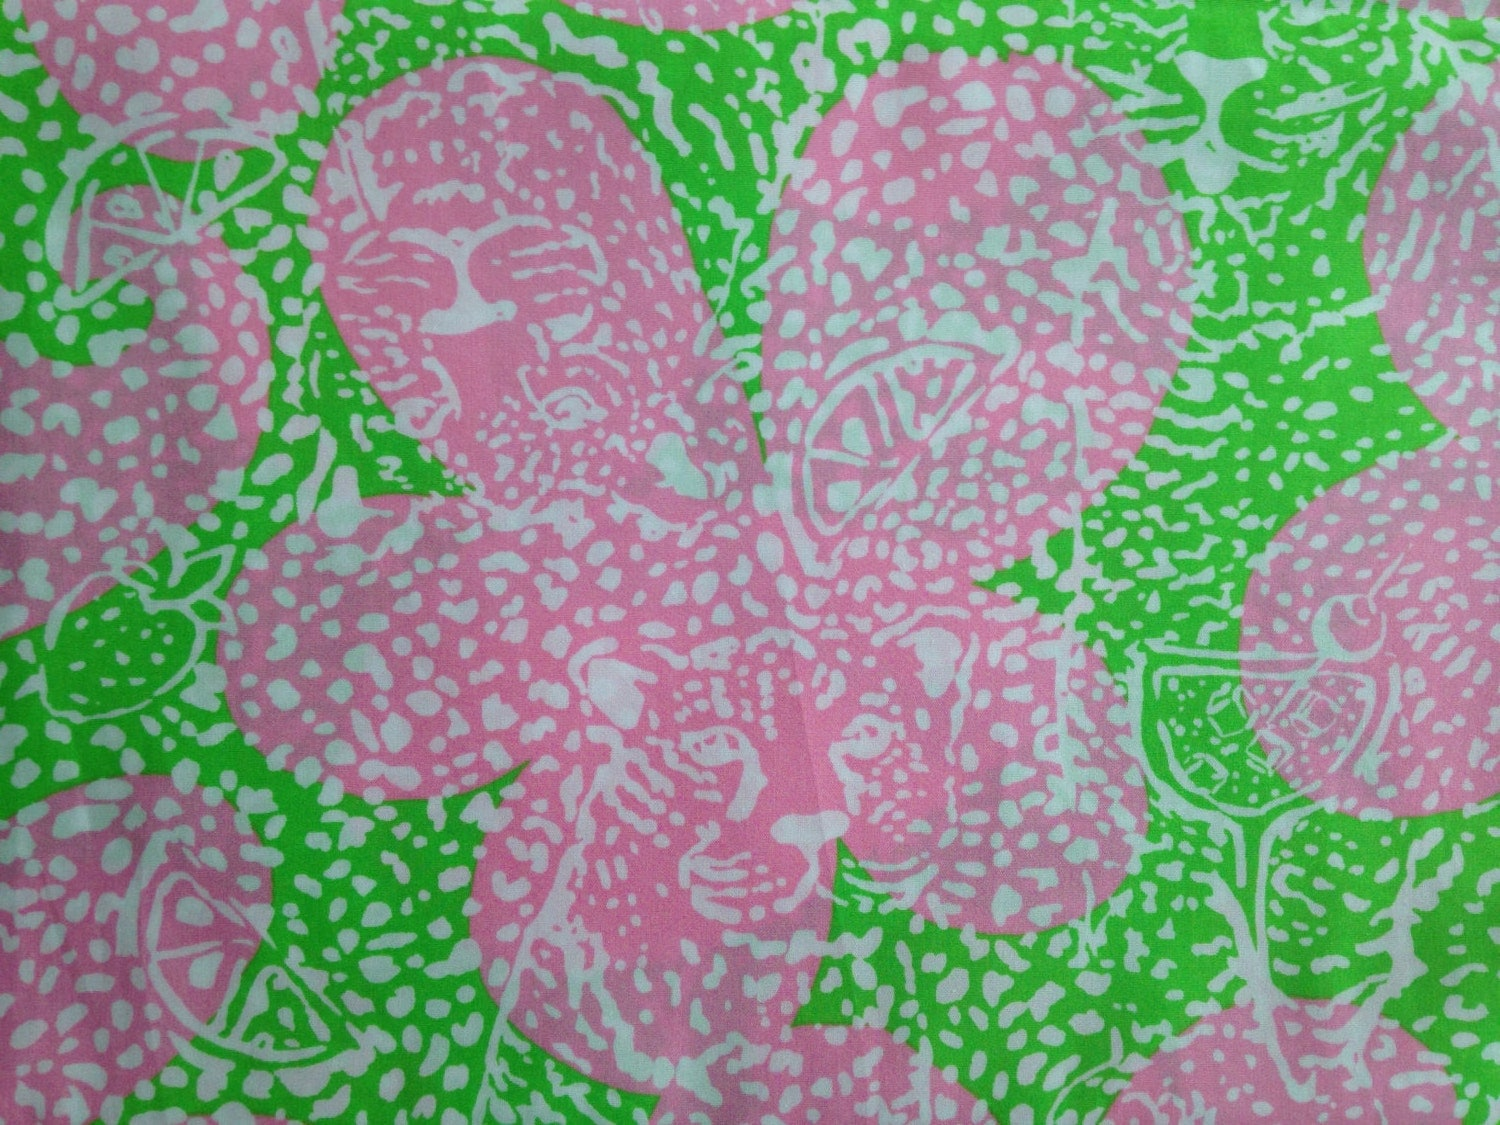 Lilly Pulitzer Fabric 3 Square Patches Of Lilly Pulitzer Fabric Limeade Cheat Ya